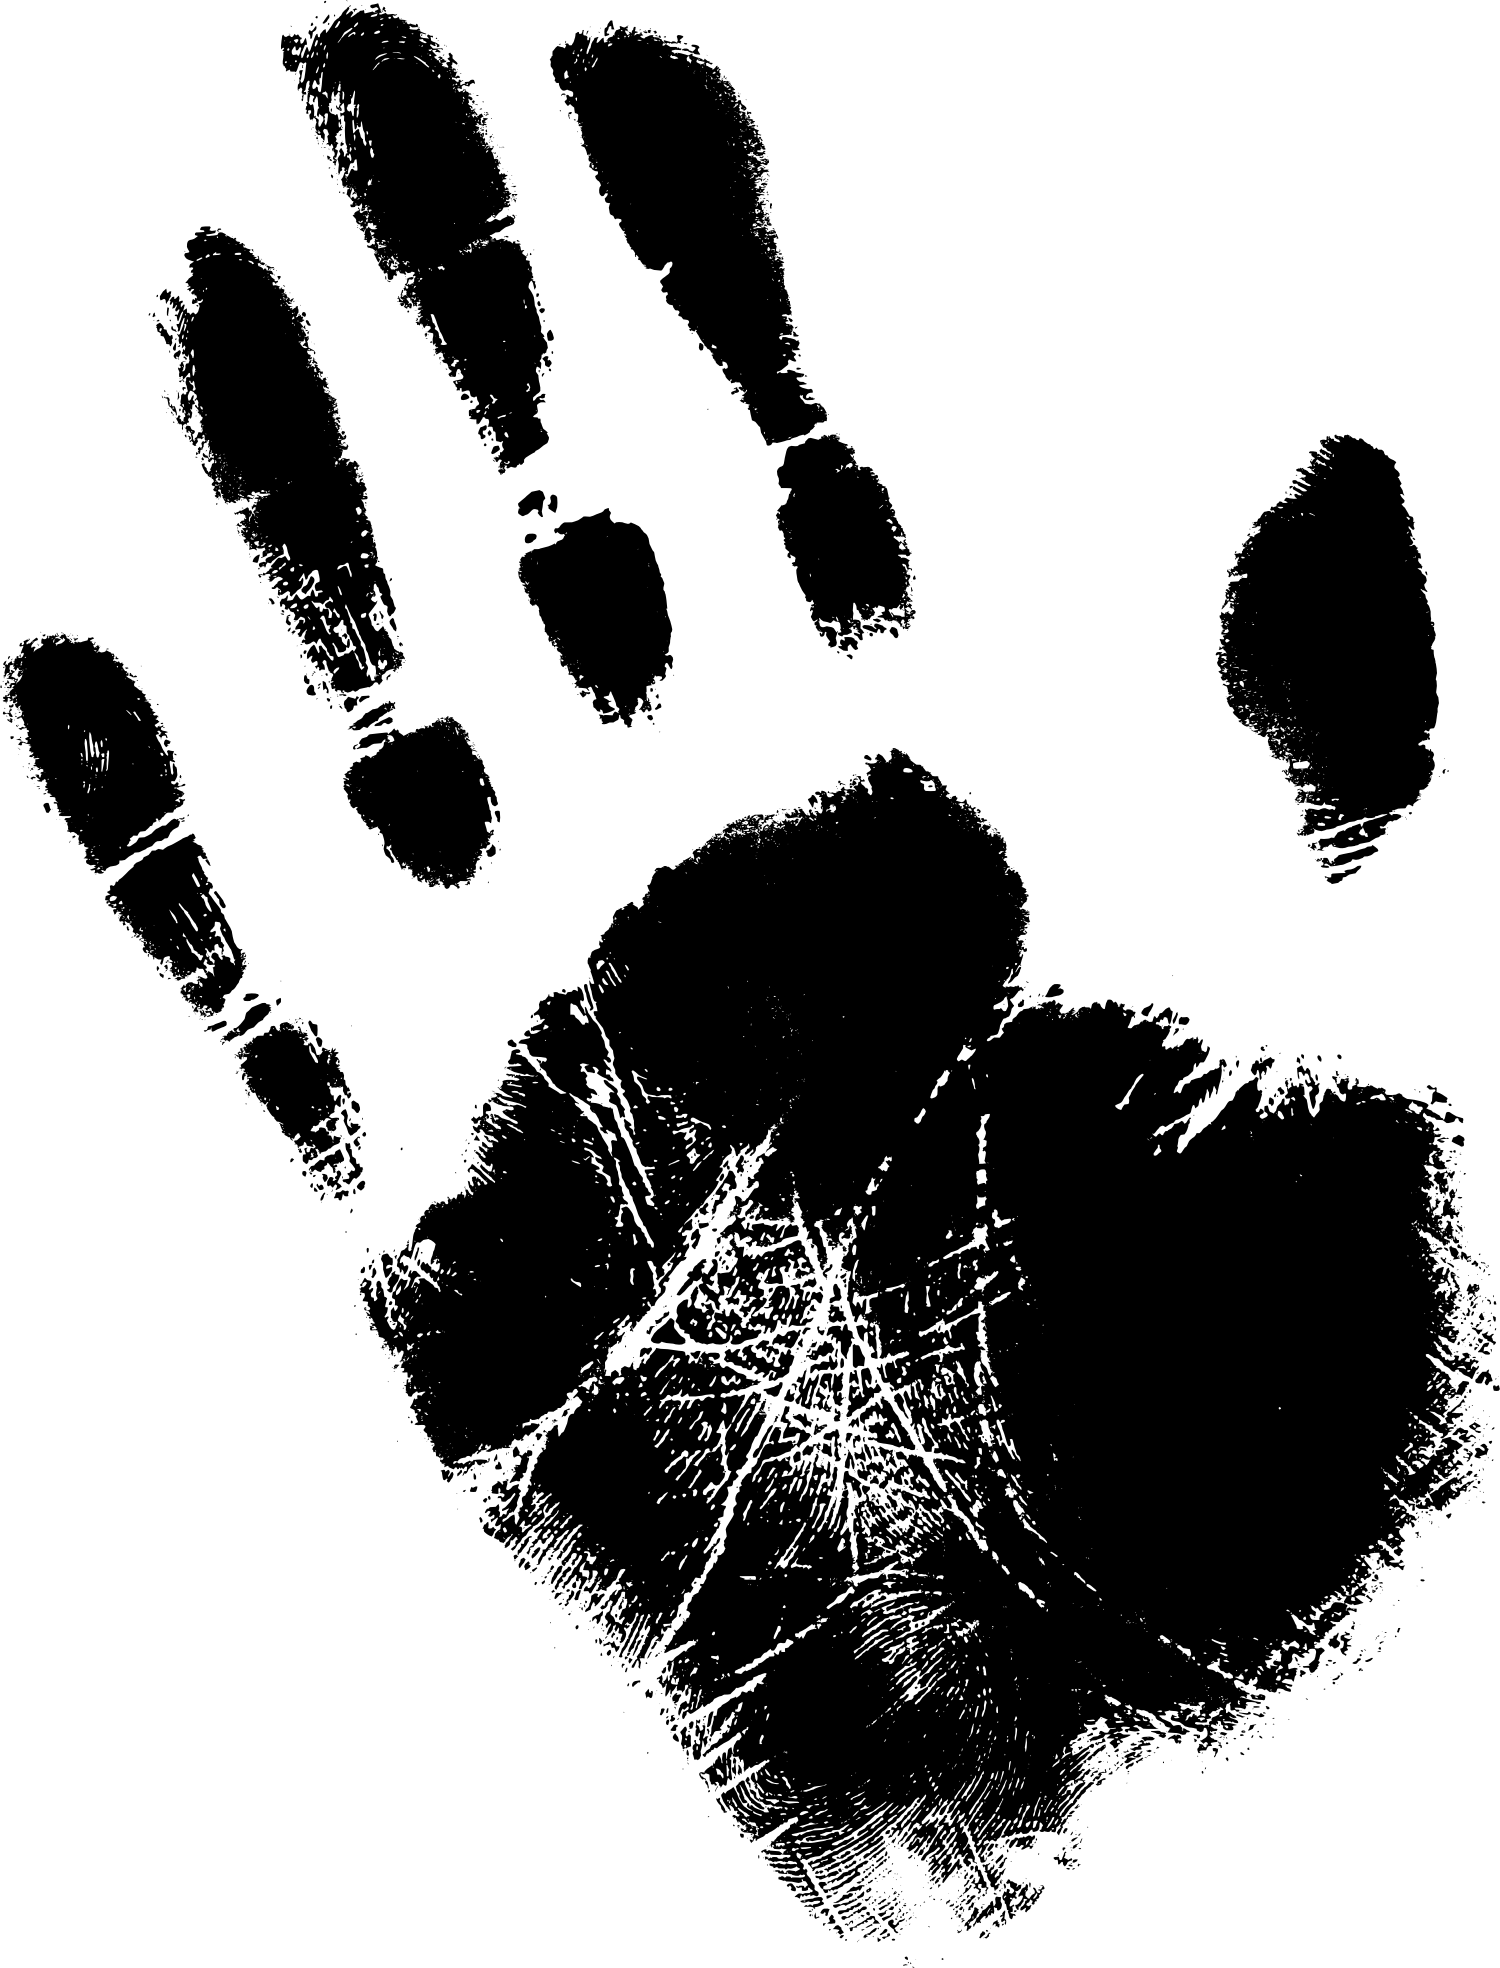 Free photo hand print. Handprint transparent digital vector freeuse library